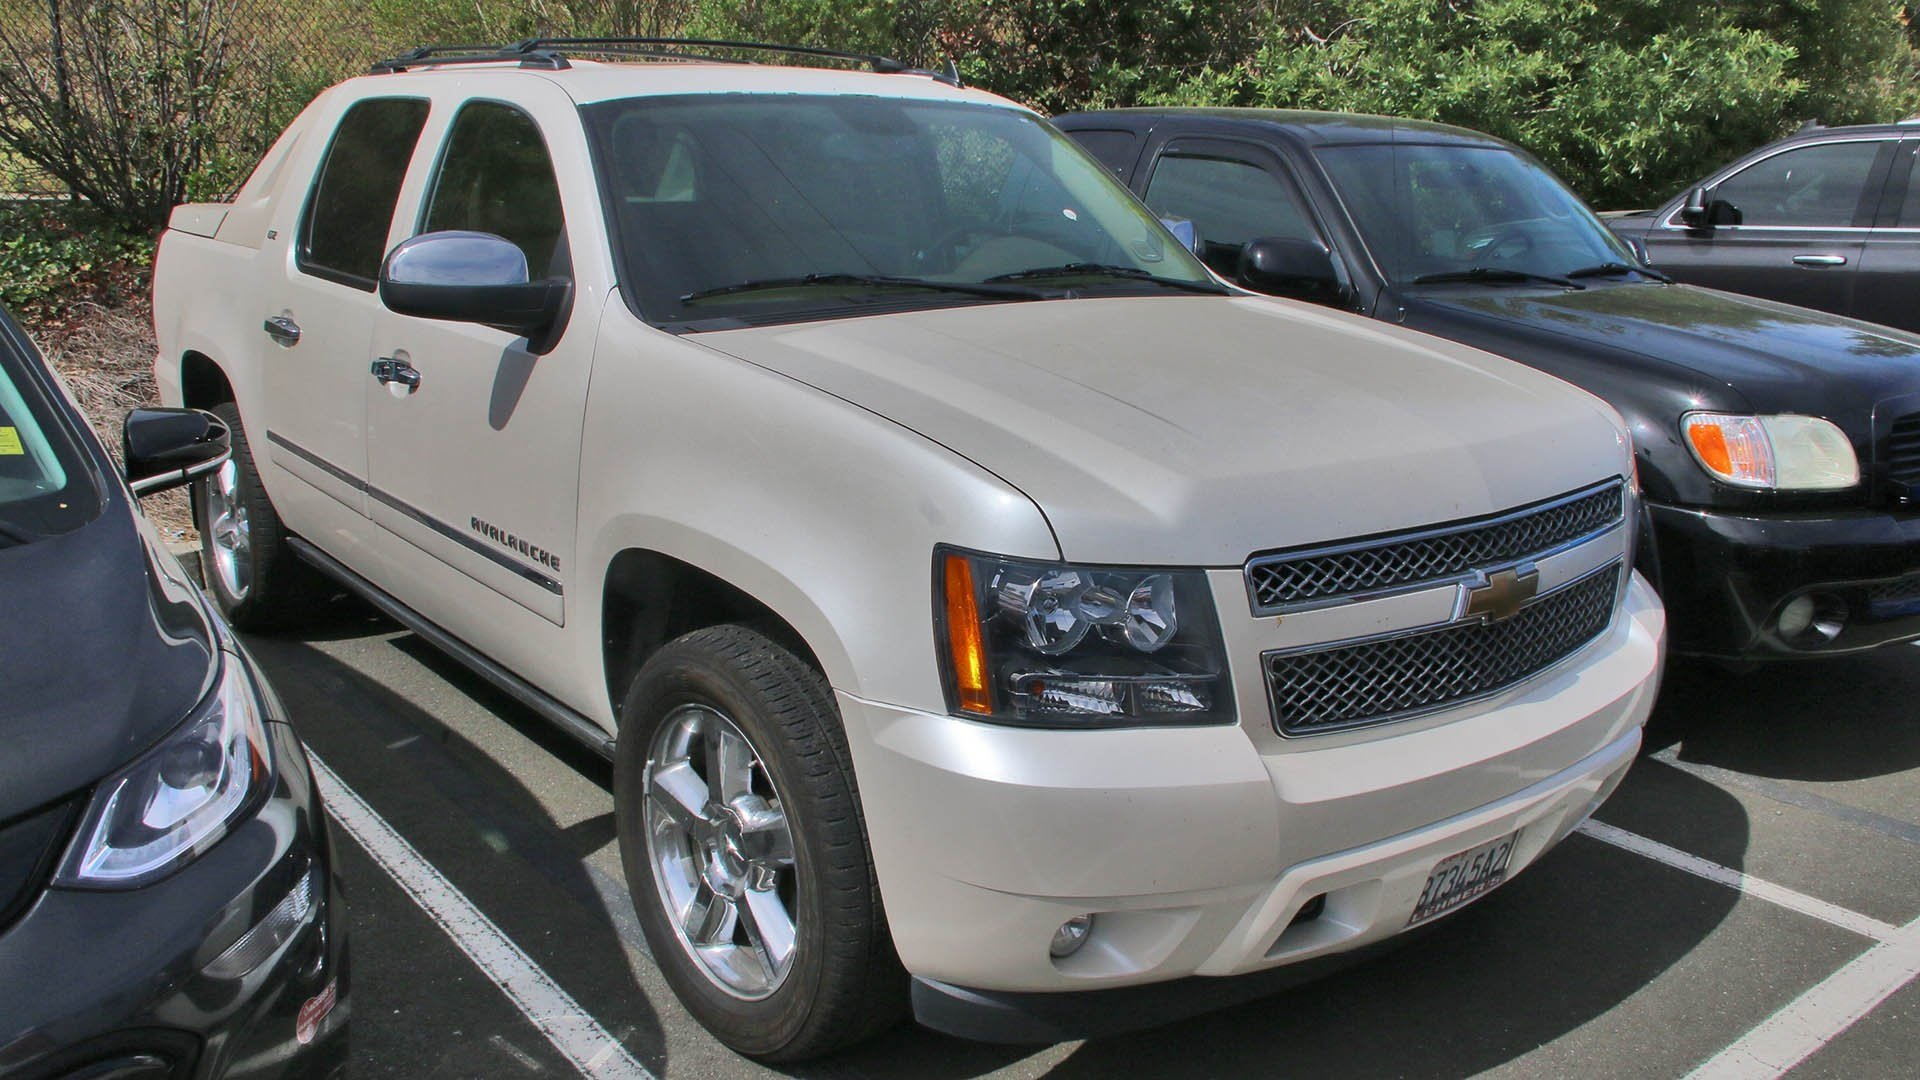 Pre-Owned 2011 Chevrolet Avalanche LTZ